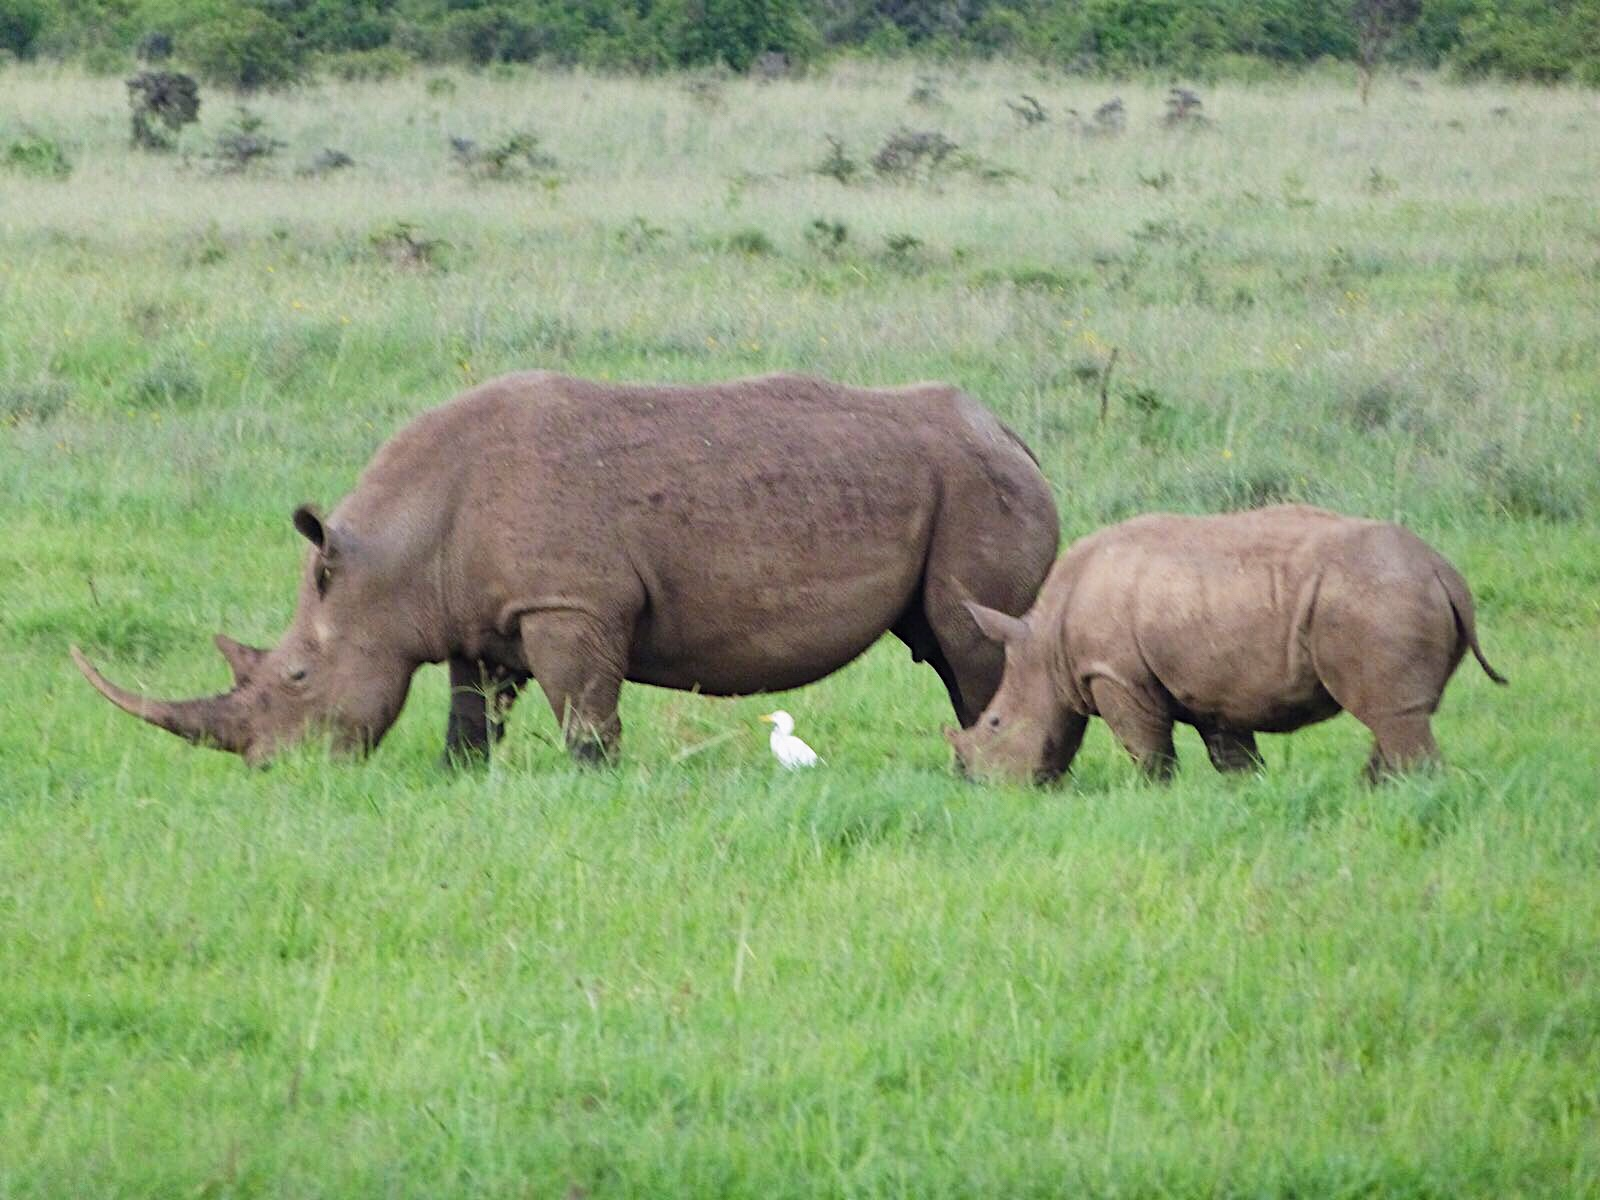 image of rhino in Nairobi National Park, how to spend a day in Nairobi